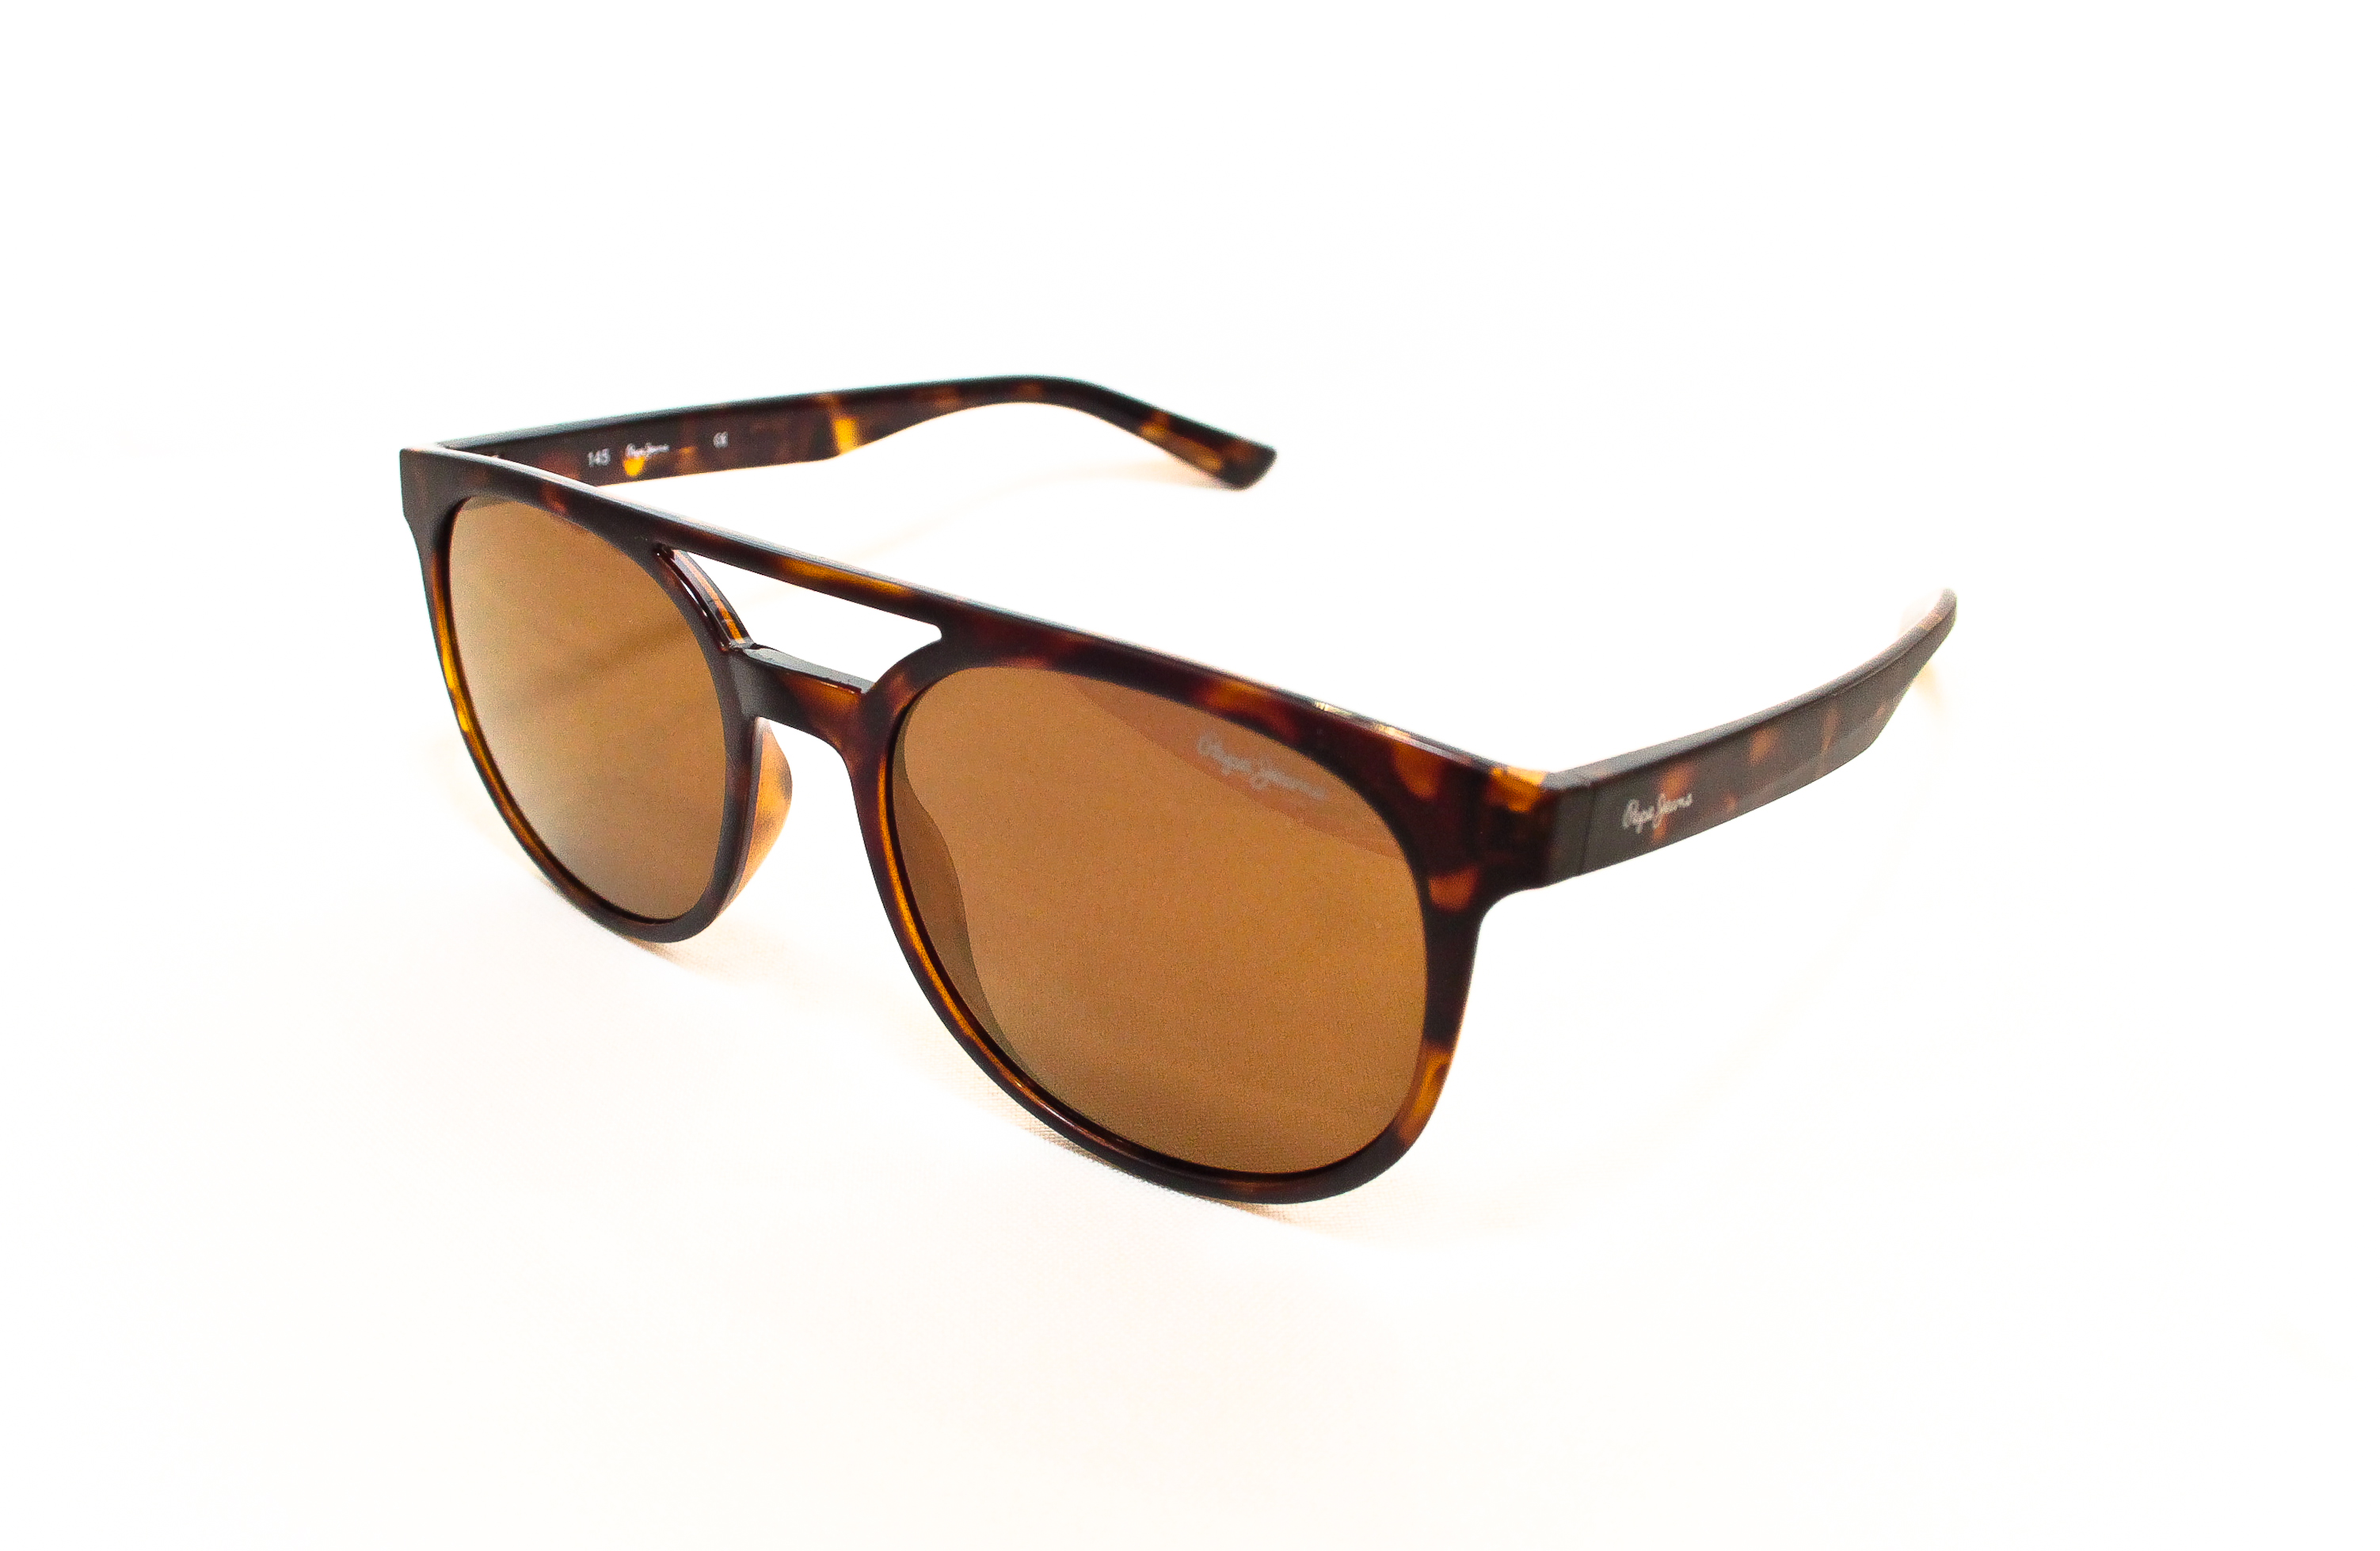 PEPE JEANS 7259 c.2